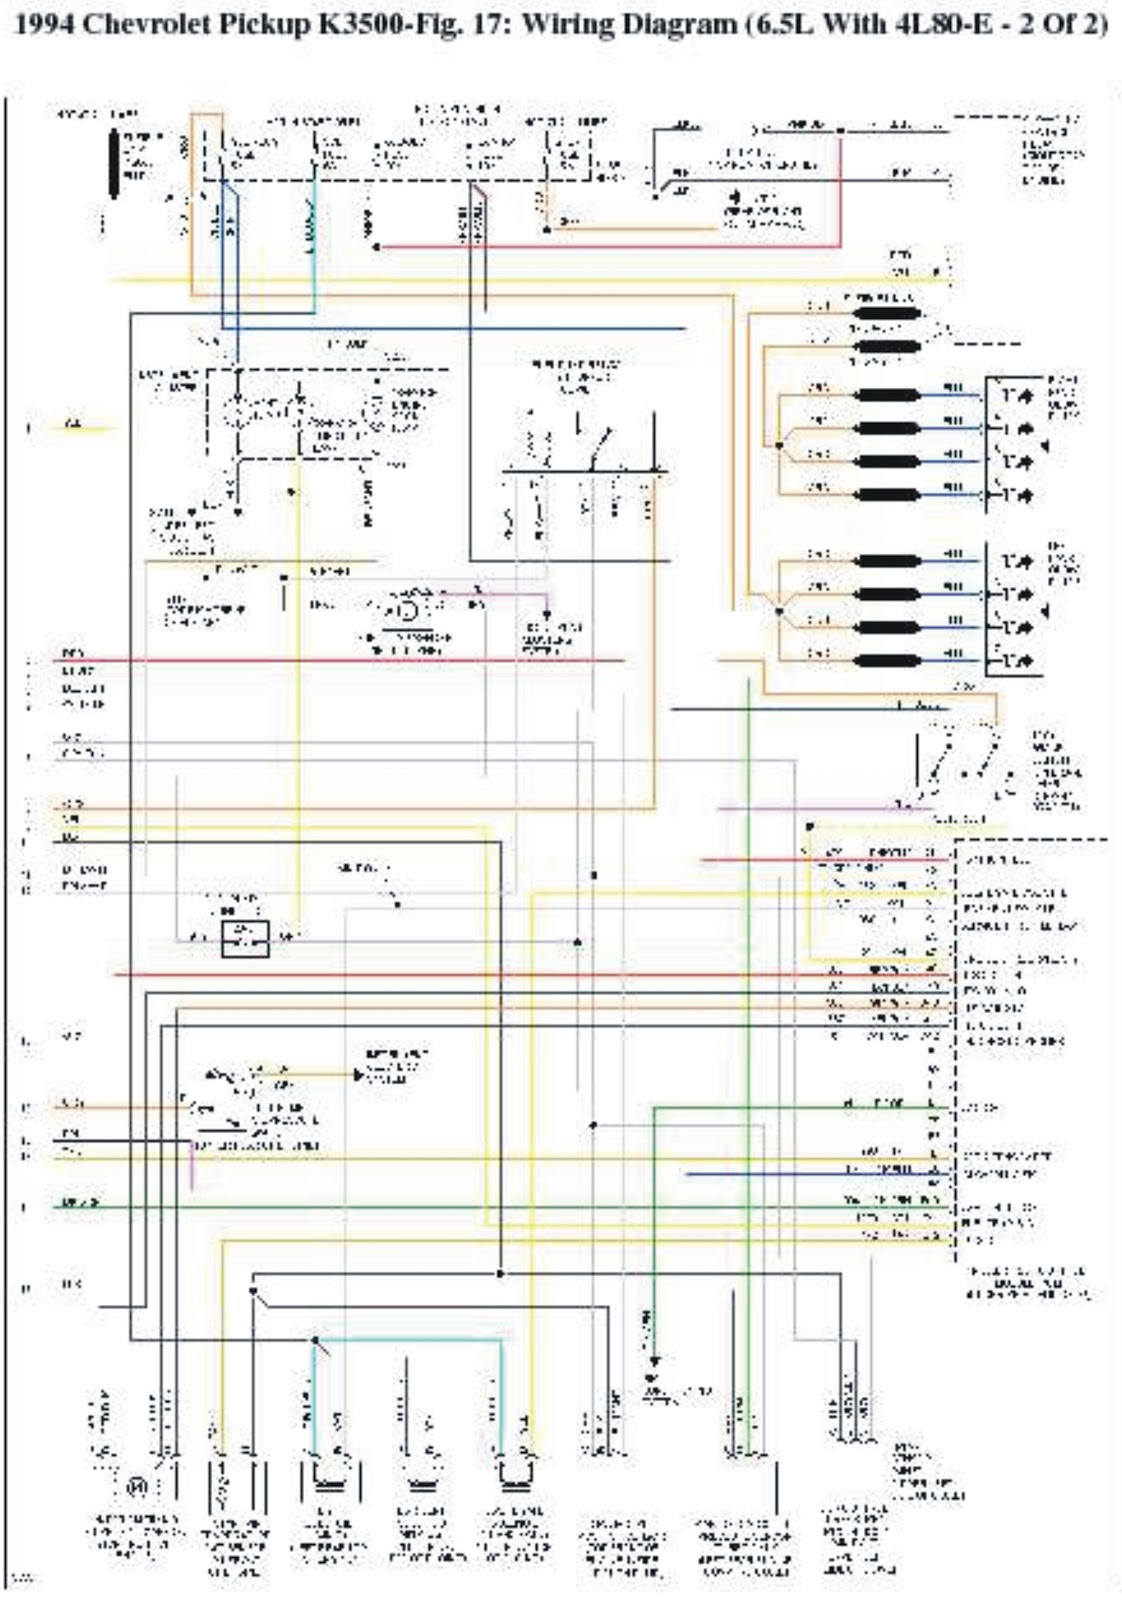 1994 Chevrolet PickUp K3500 Wiring Diagrams | Wiring Diagrams Center